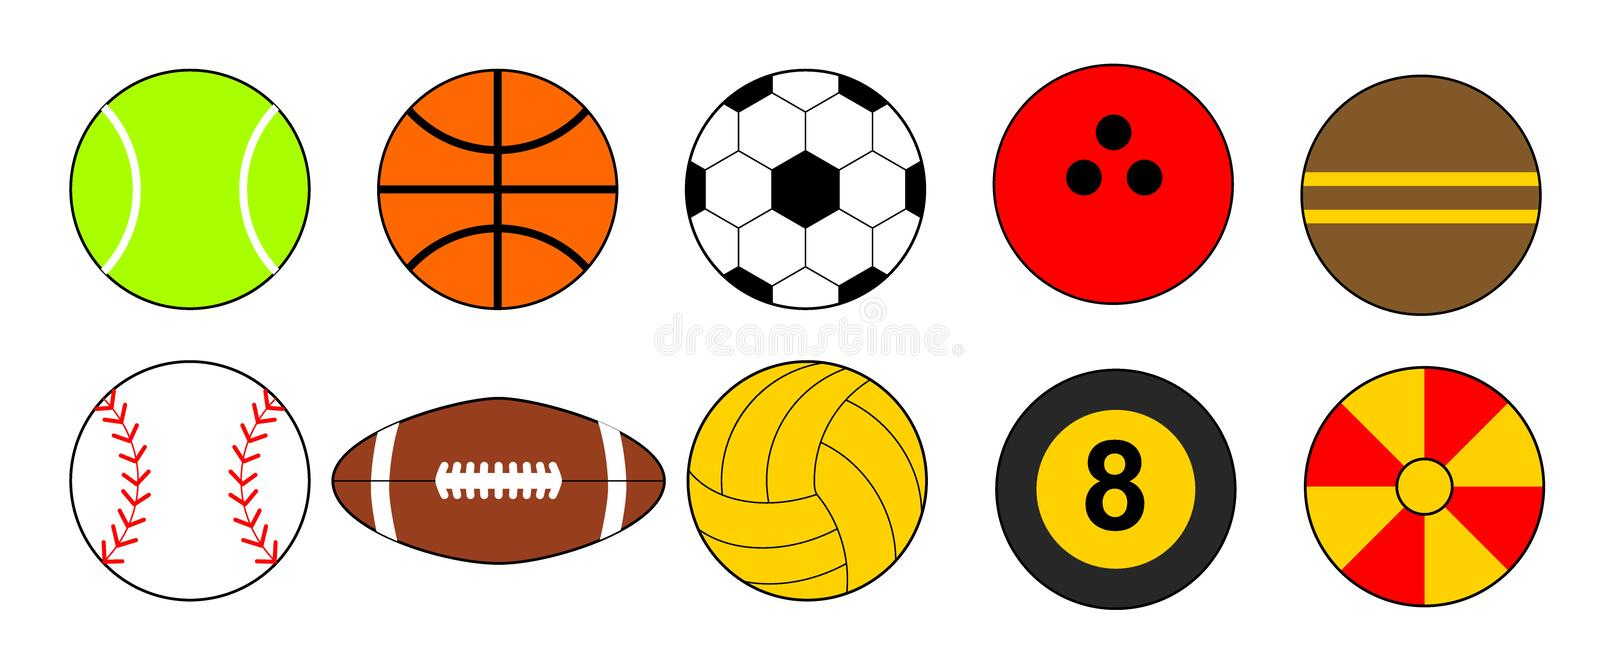 Sport balls icon set. Flat set of sport balls vector icons for web design isolated royalty free illustration